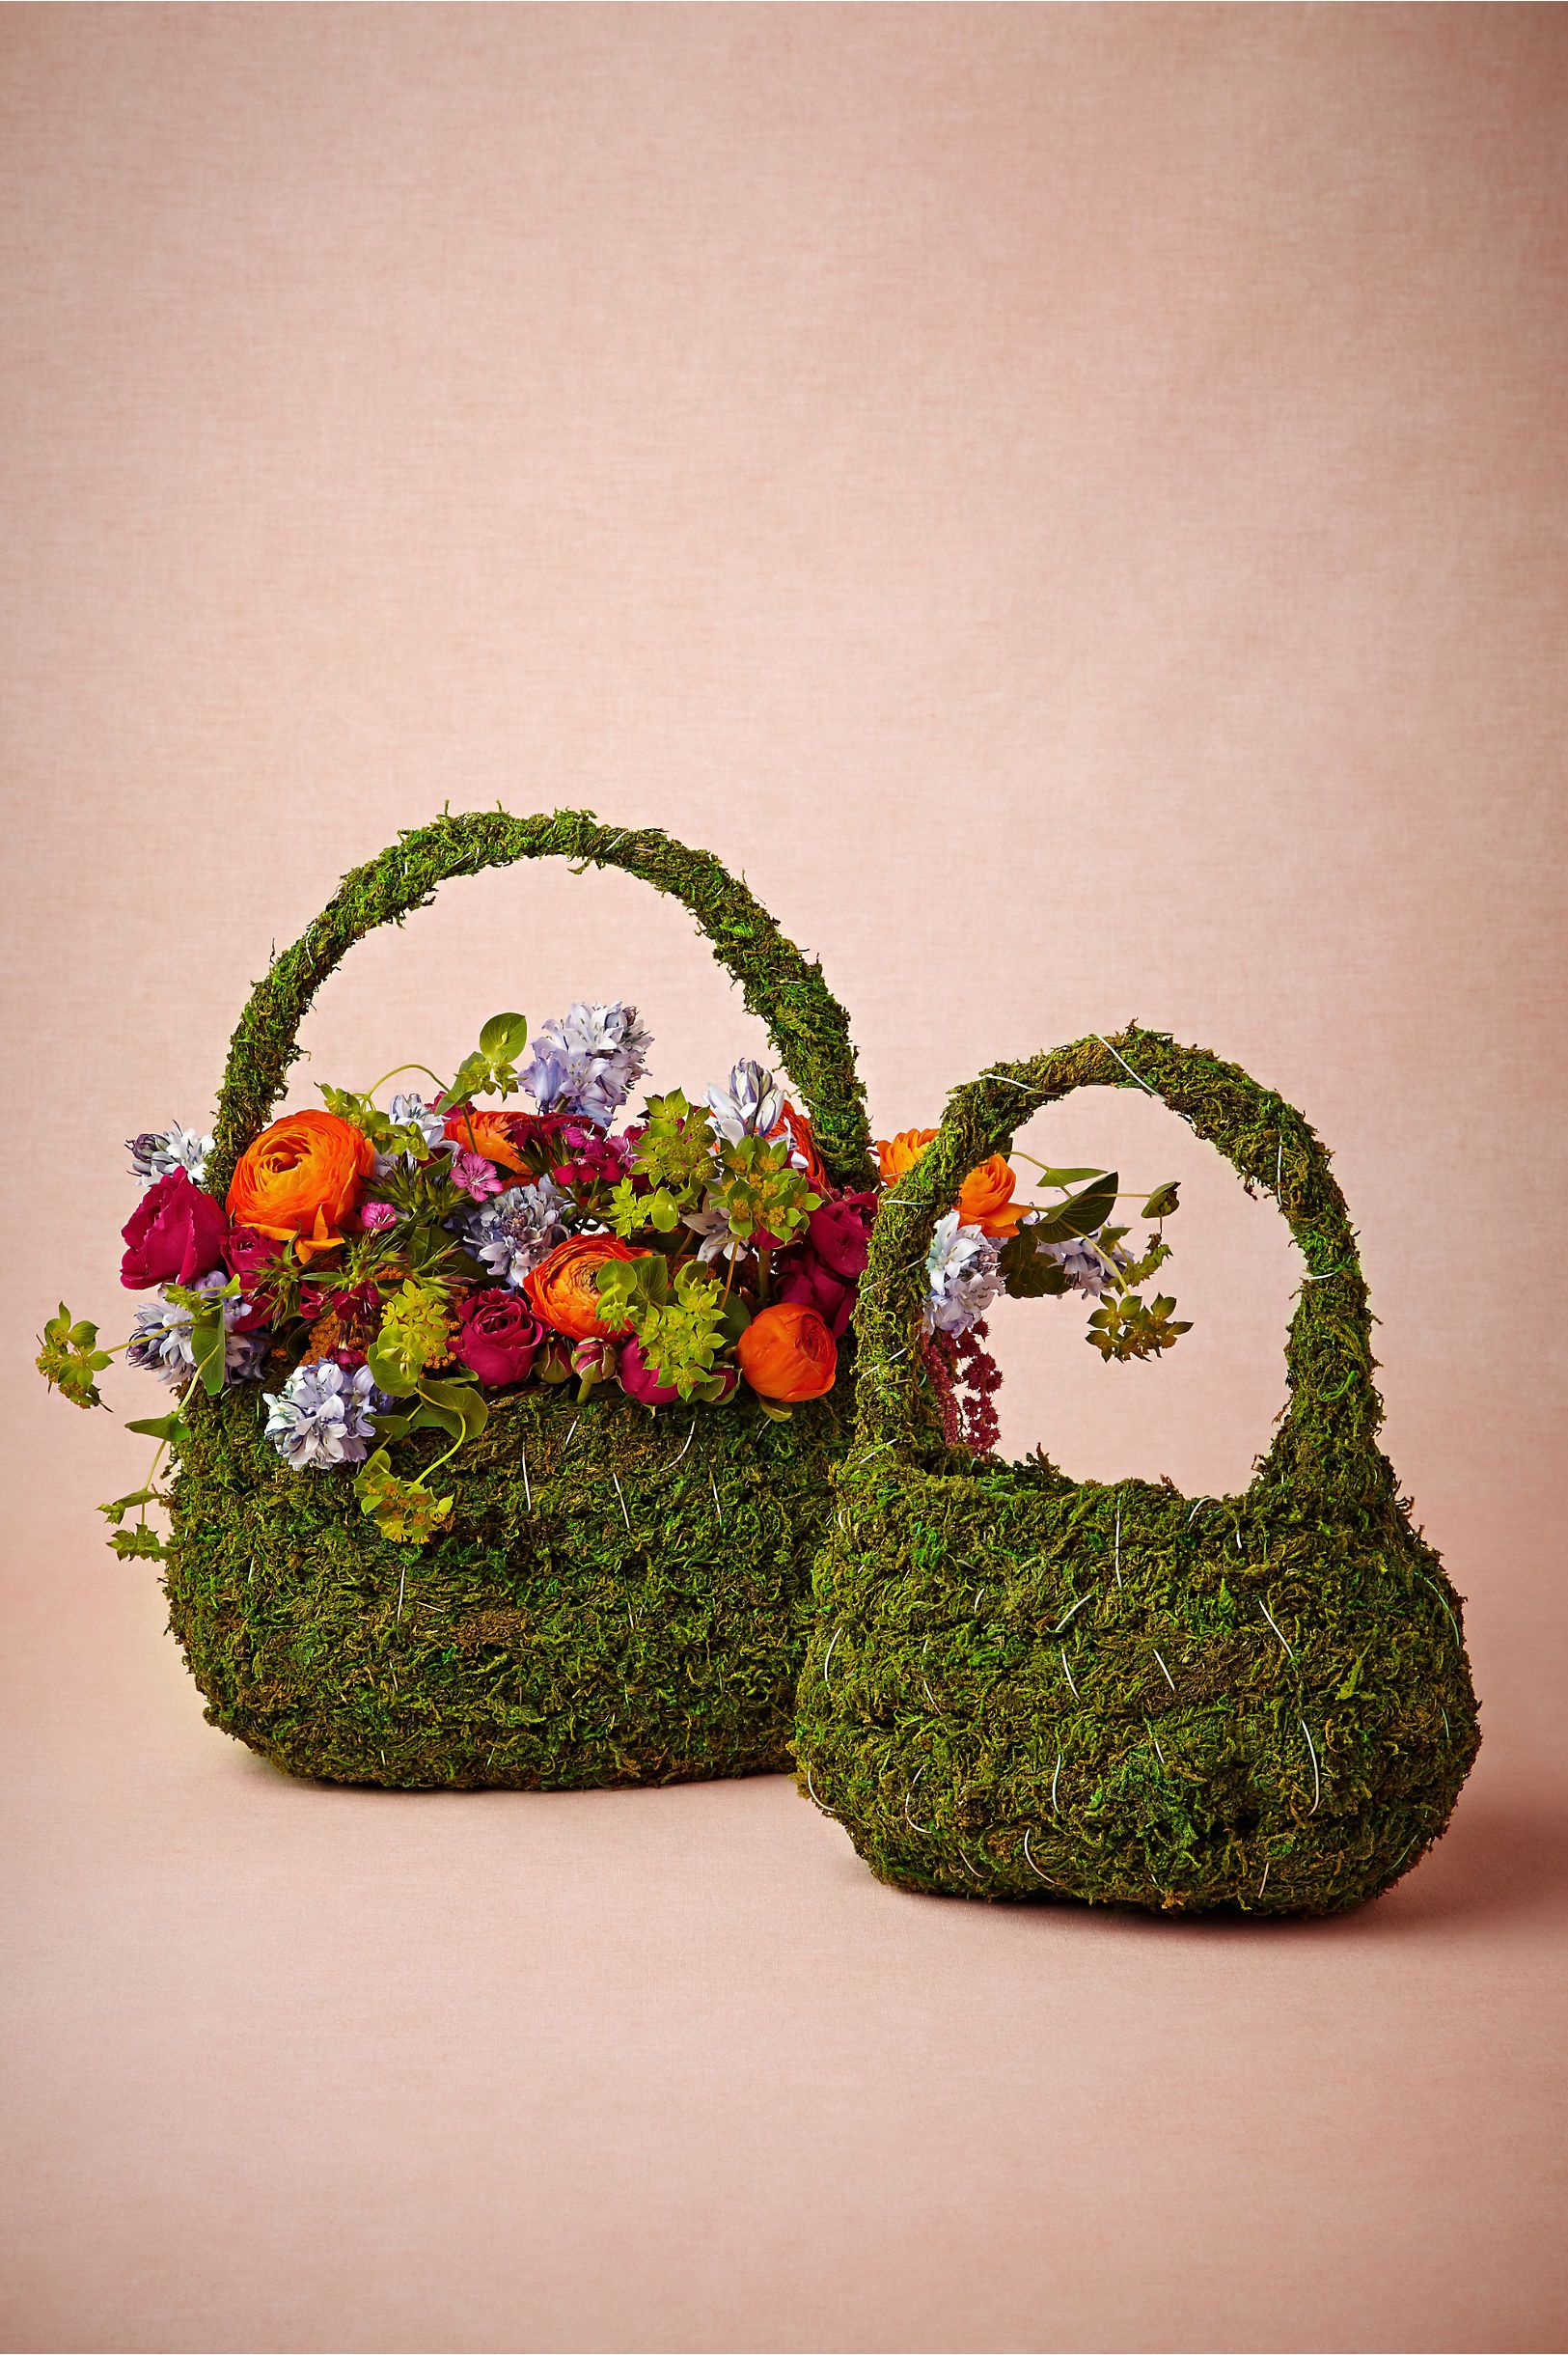 Product fernmoss basket from bhldn fall wedding ideas product fernmoss basket from bhldn izmirmasajfo